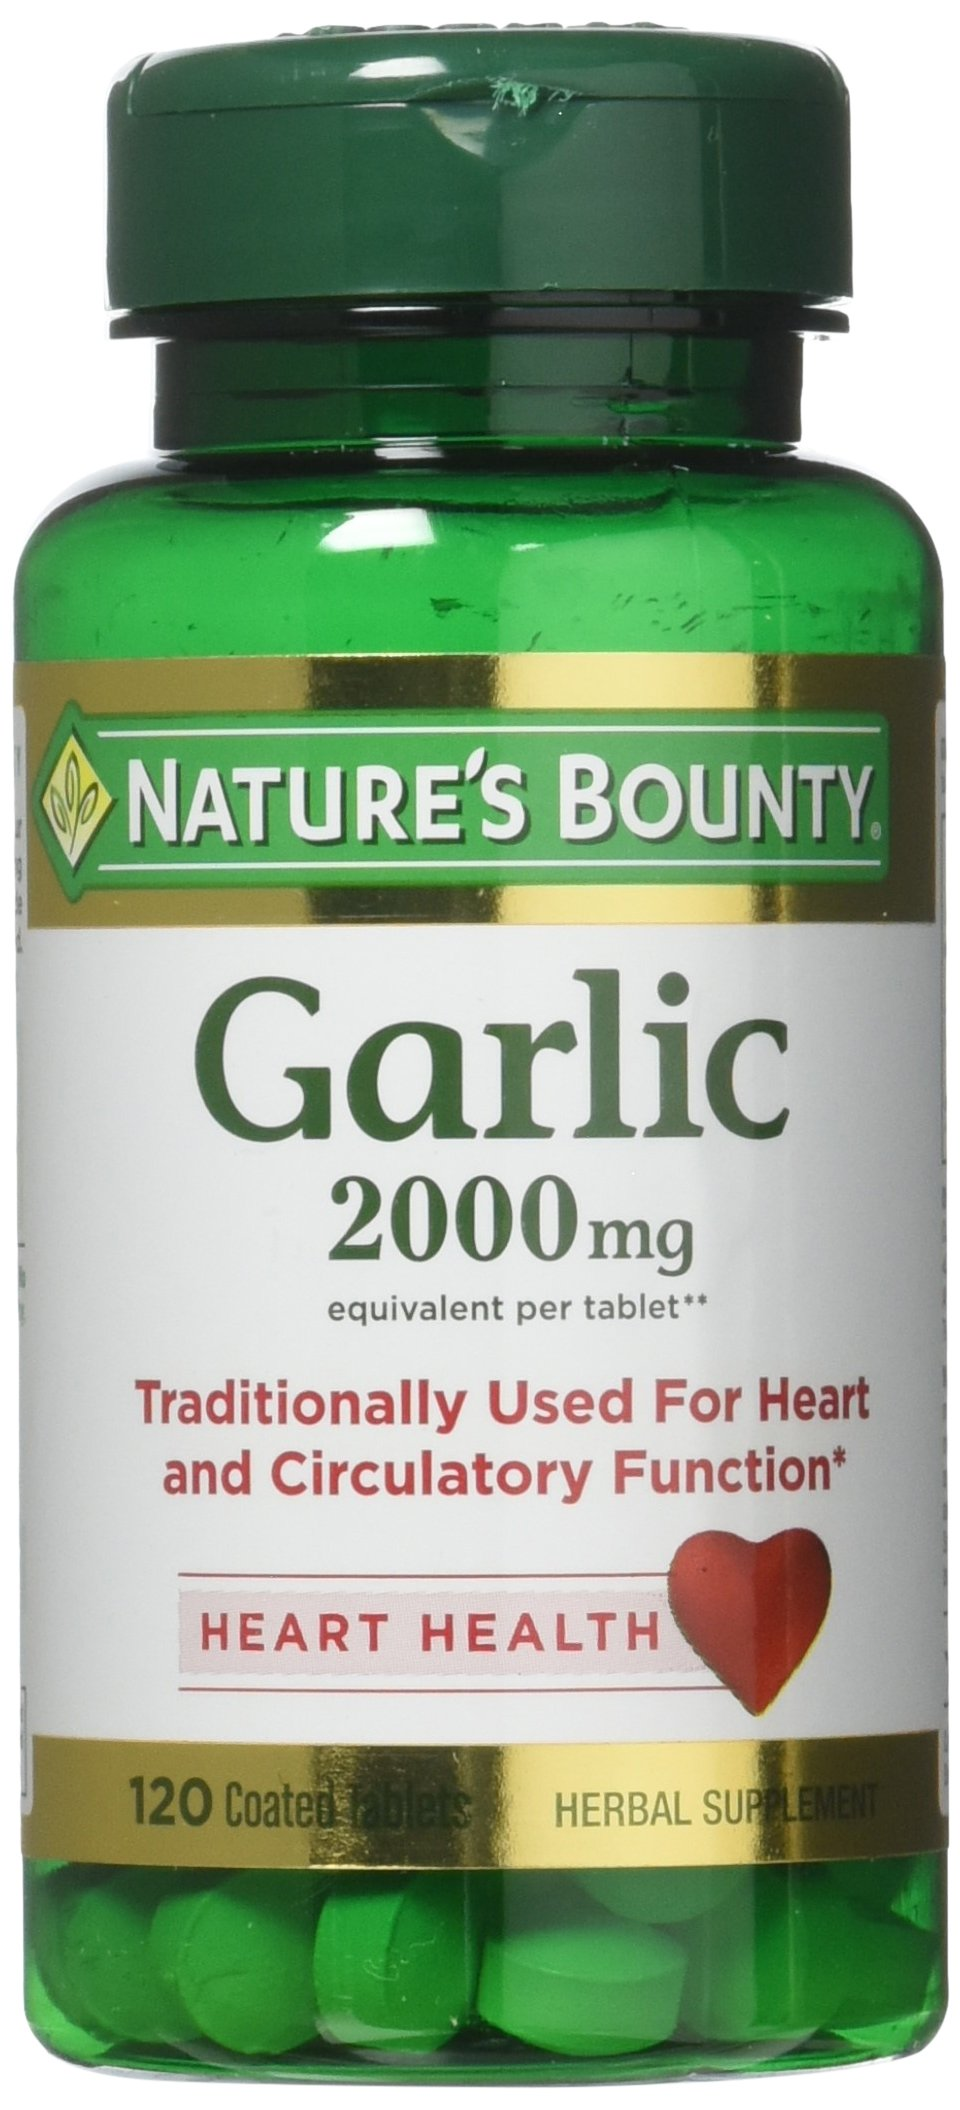 Nature's Bounty Garlic, 2000mg, 120 Coated Tablets (Pack of 2) by Nature's Bounty